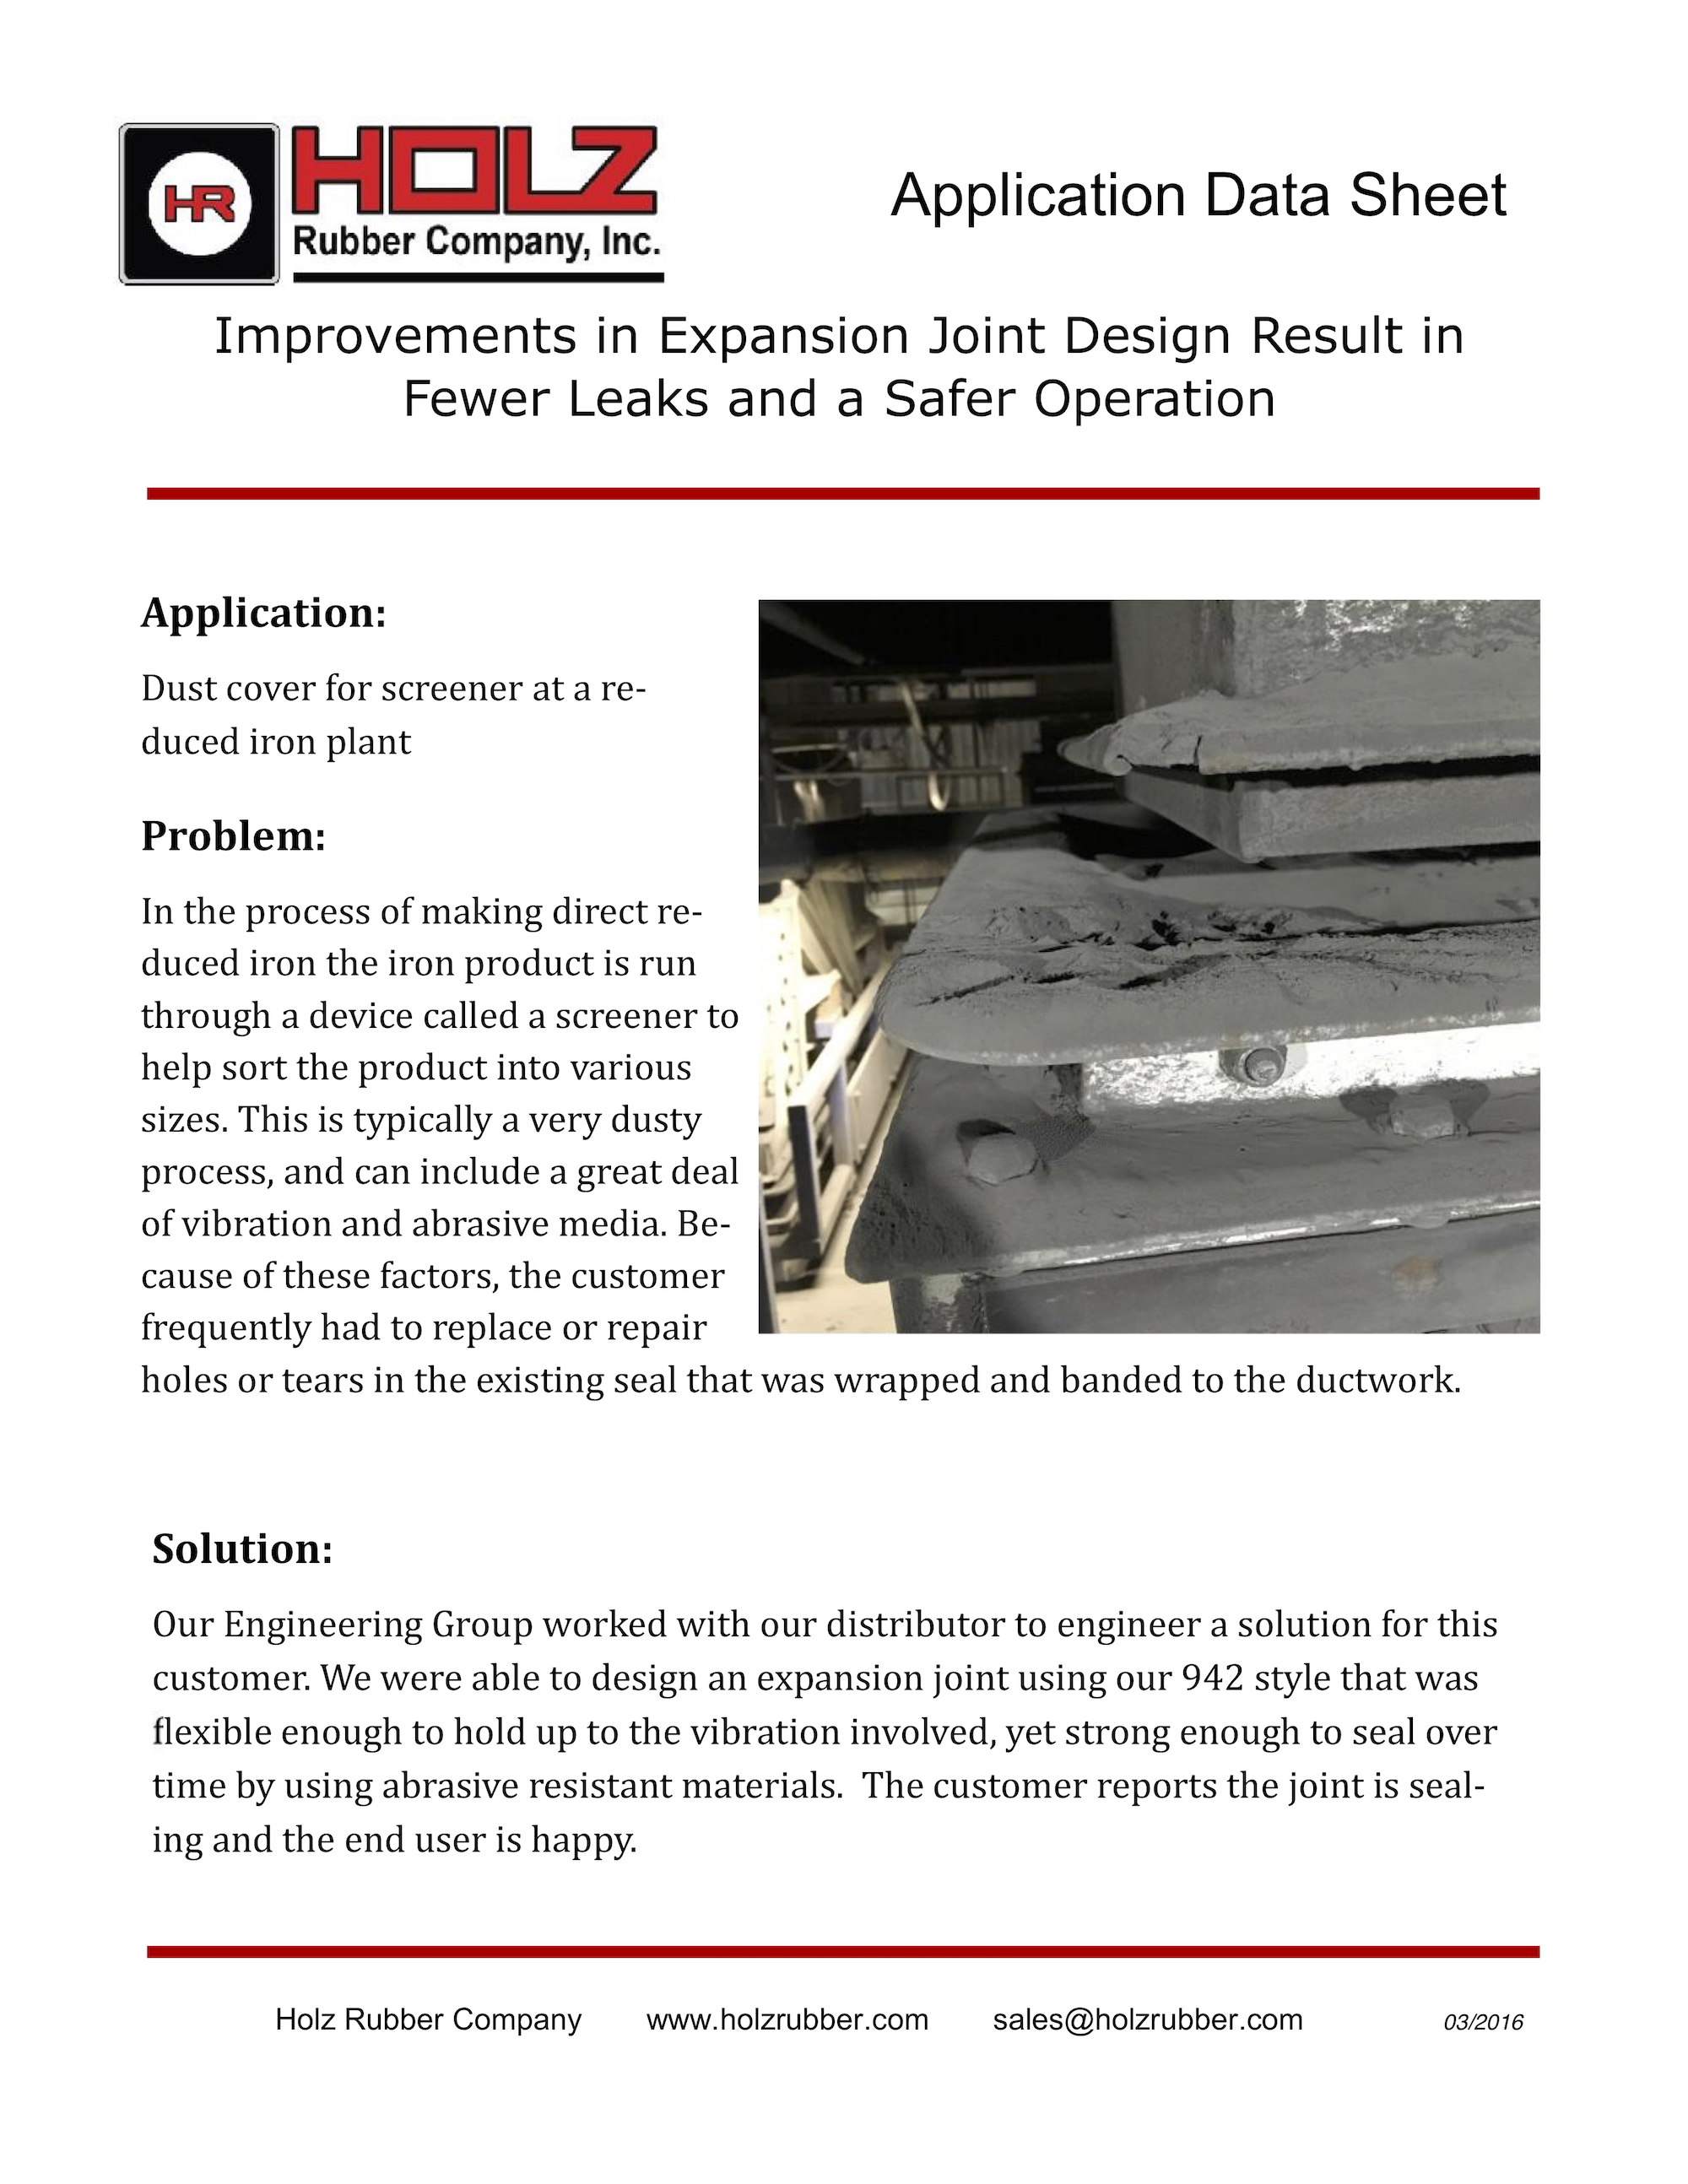 Improvements in Expansion Joint Design Result in Fewer Leaks and a Safer Operation